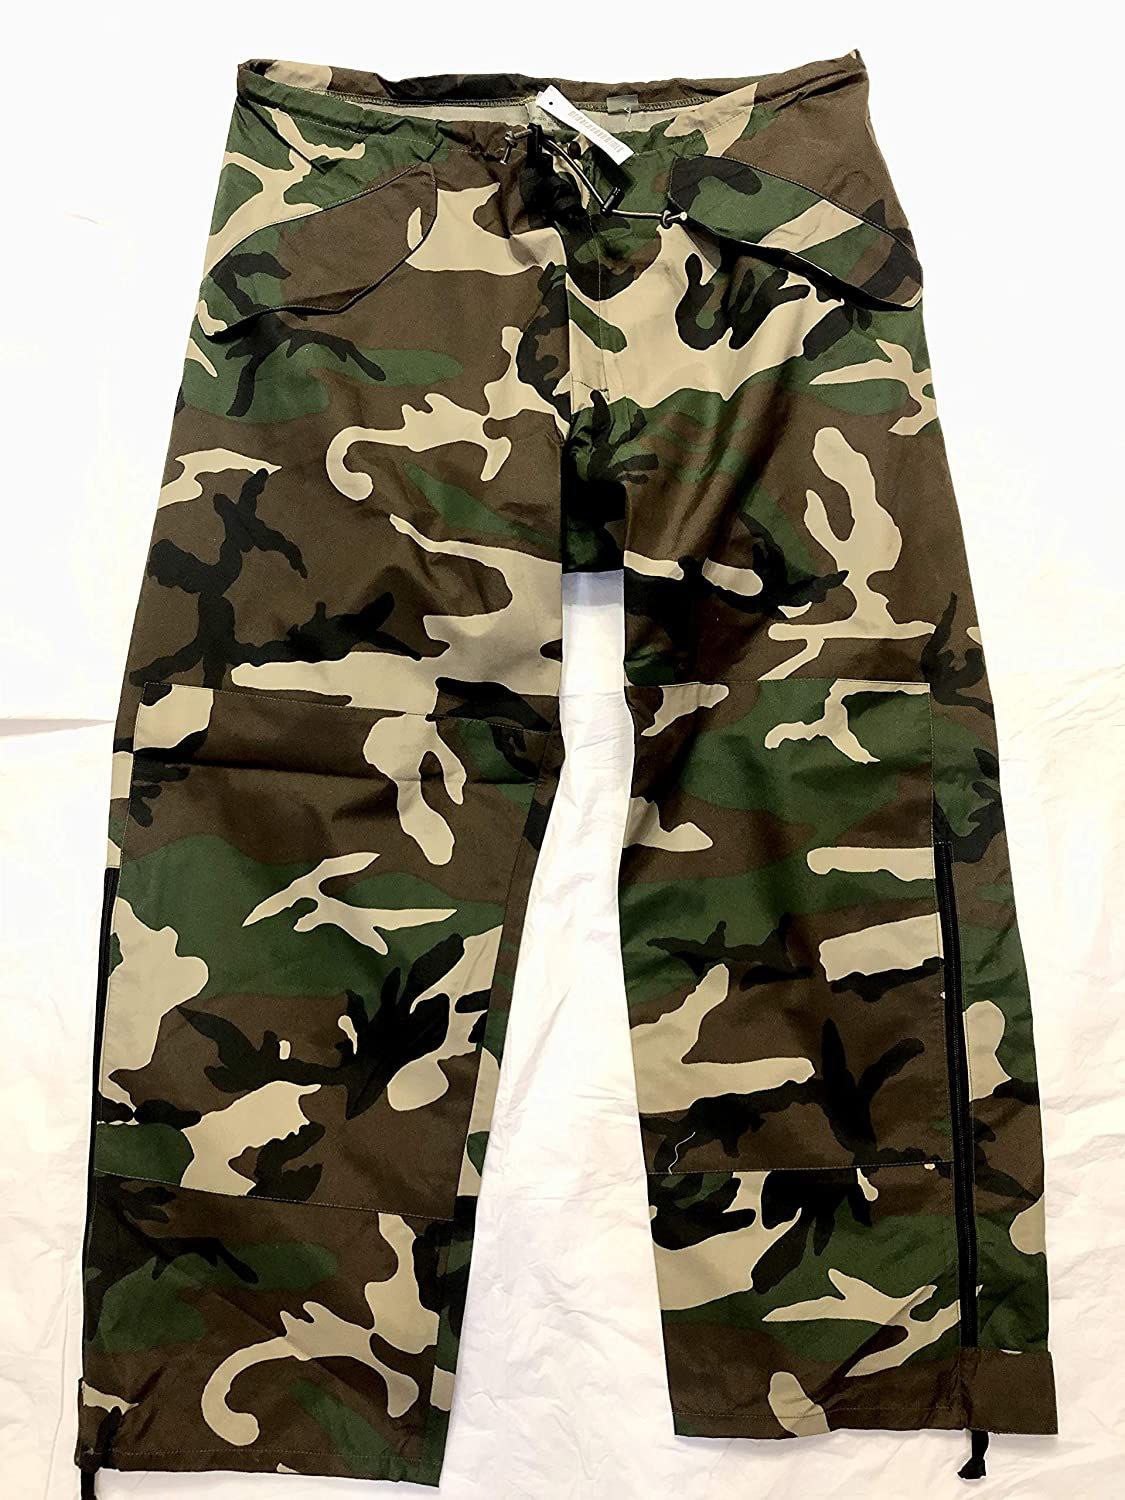 Us Army Issue Ecwcs Gore Tex Woodland Camouflage Cold Weather Pants - Large Regular.